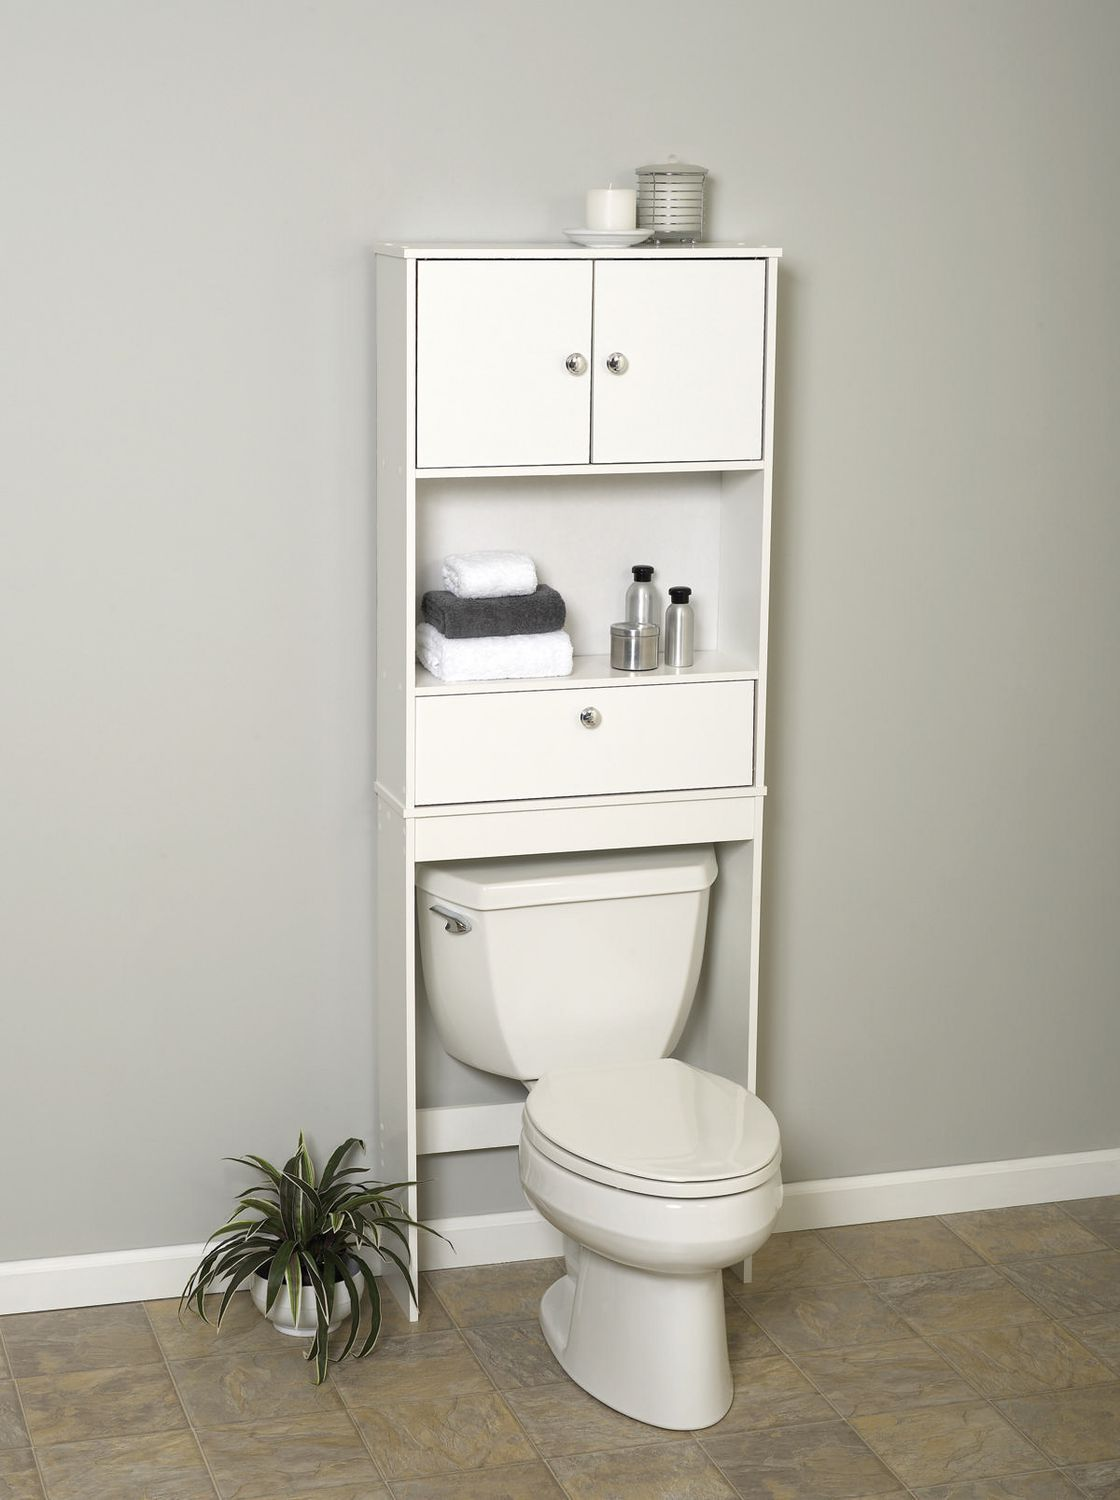 Walmart bathroom storage - Mainstays White Wood Spacesaver With Cabinet And Drop Door Walmart Canada